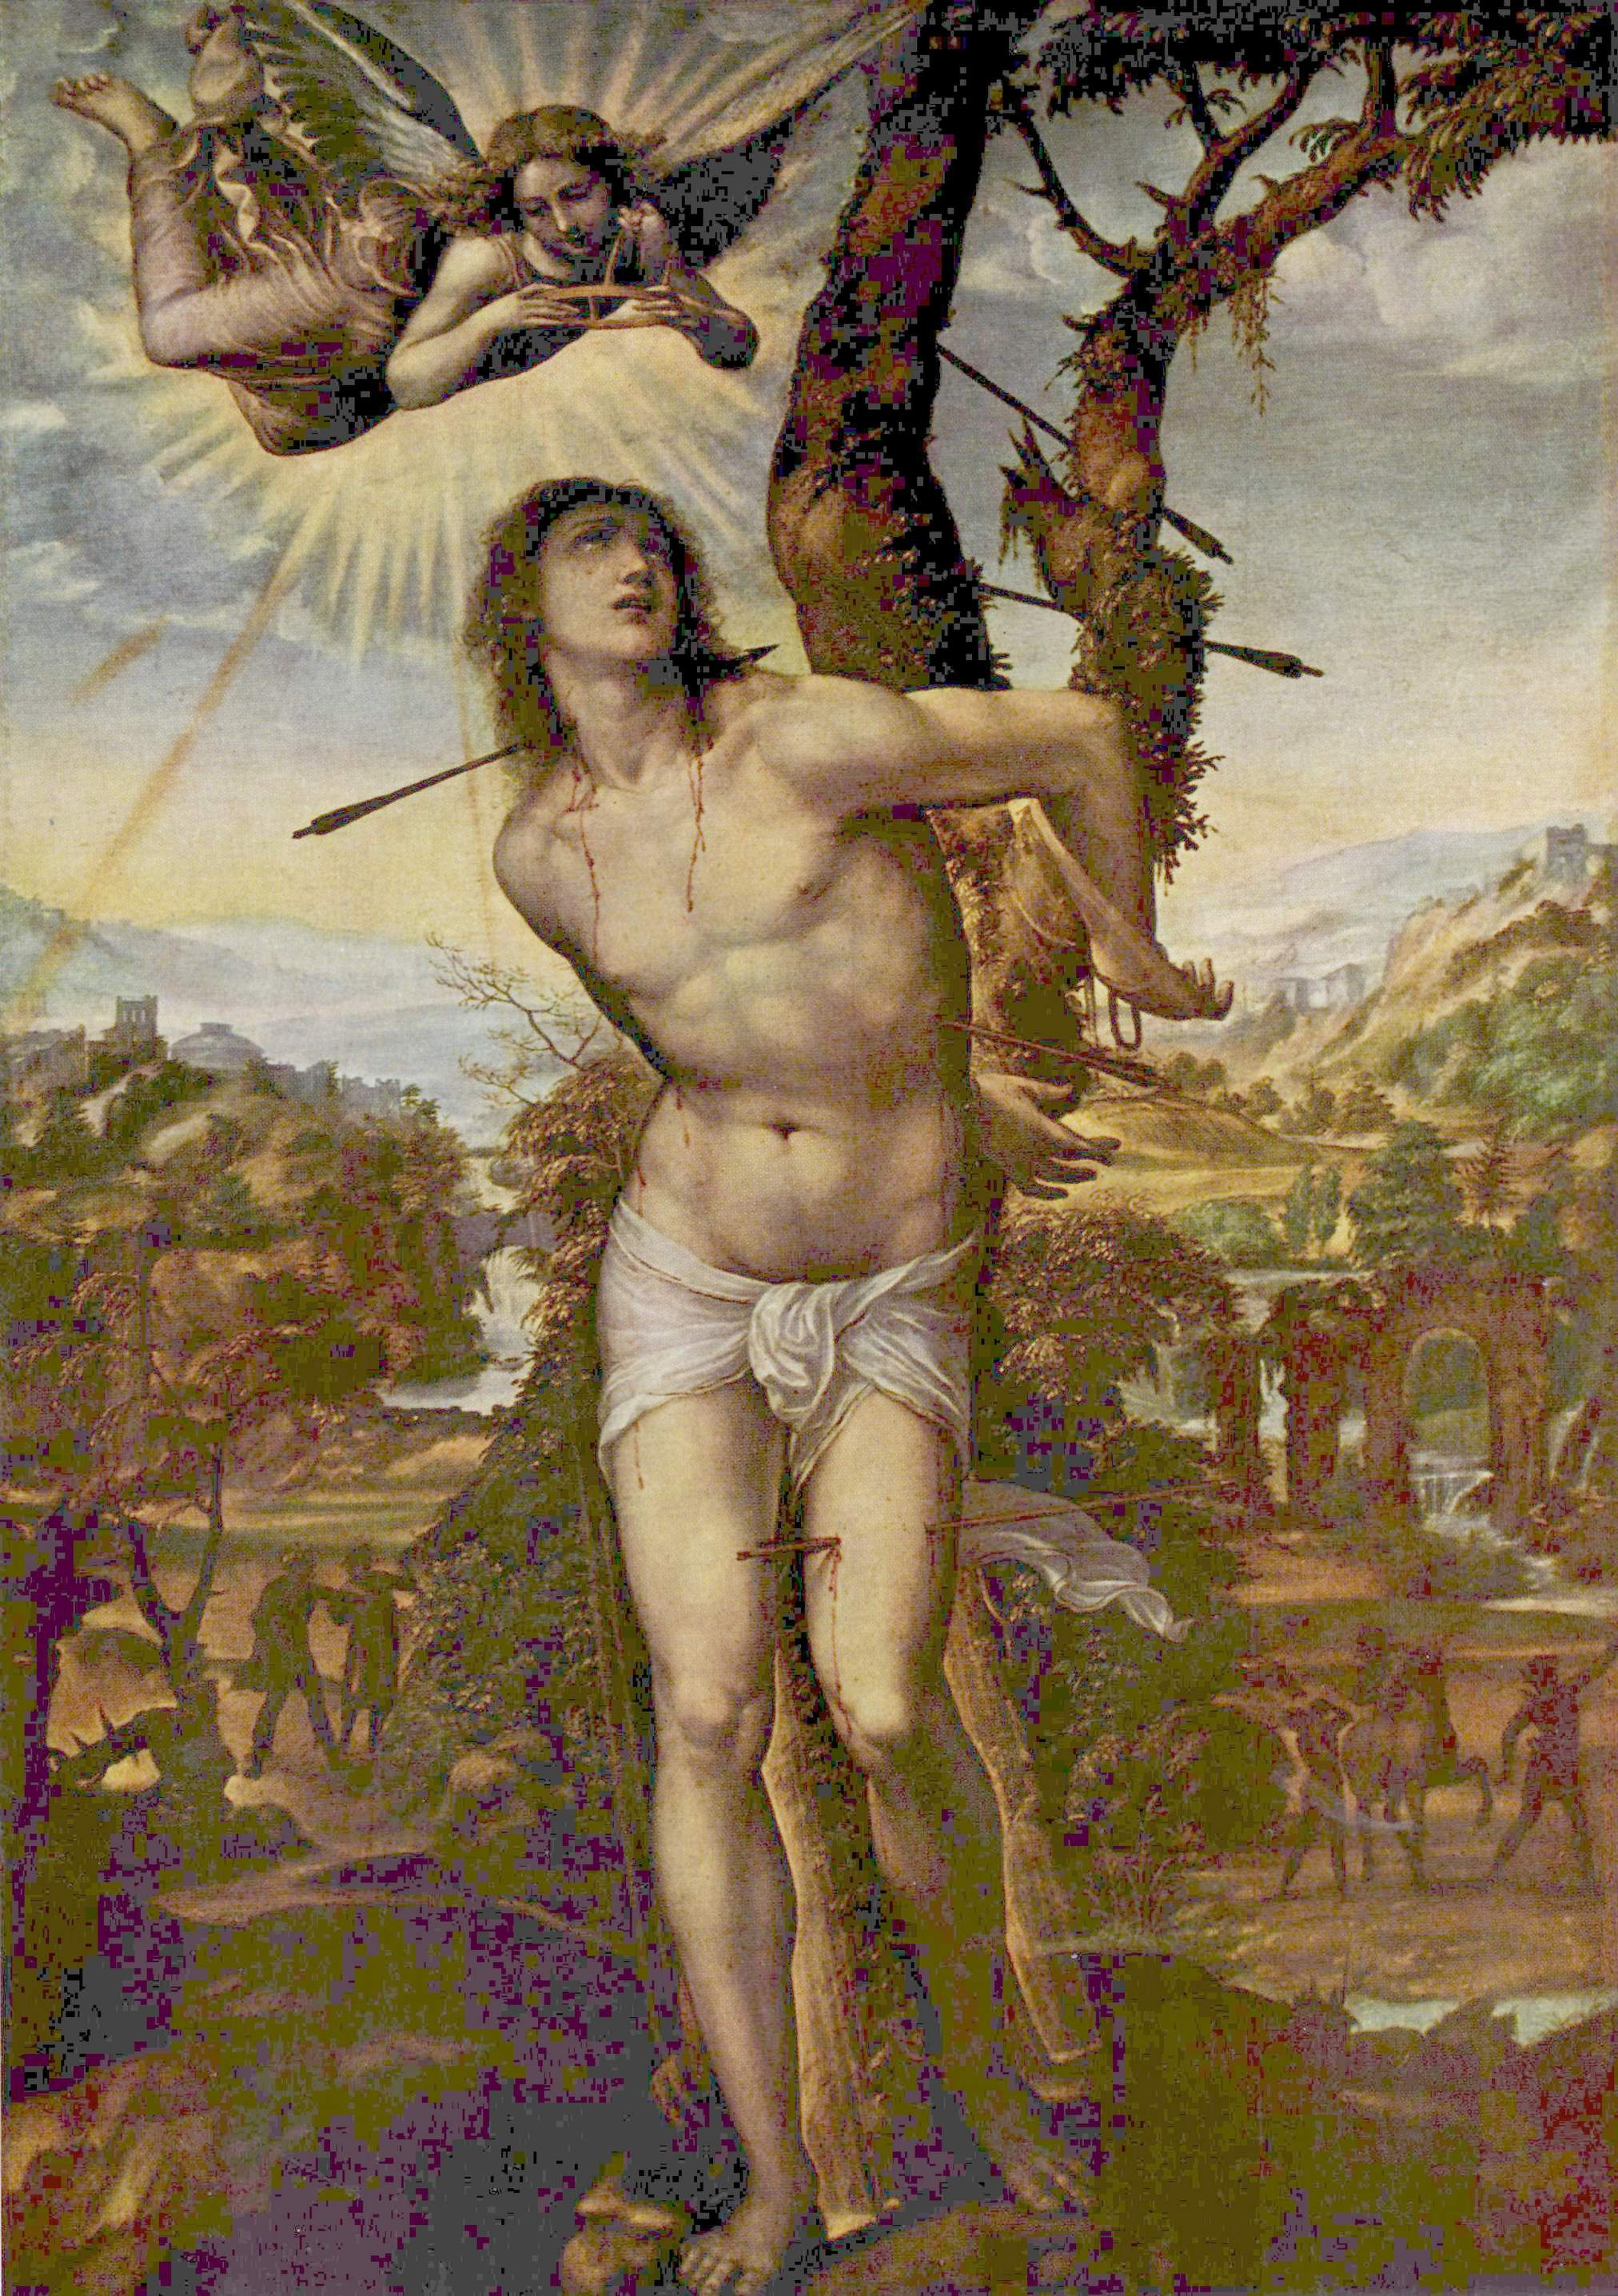 painting by il sodoma c 1525 depicting st sebastian and the